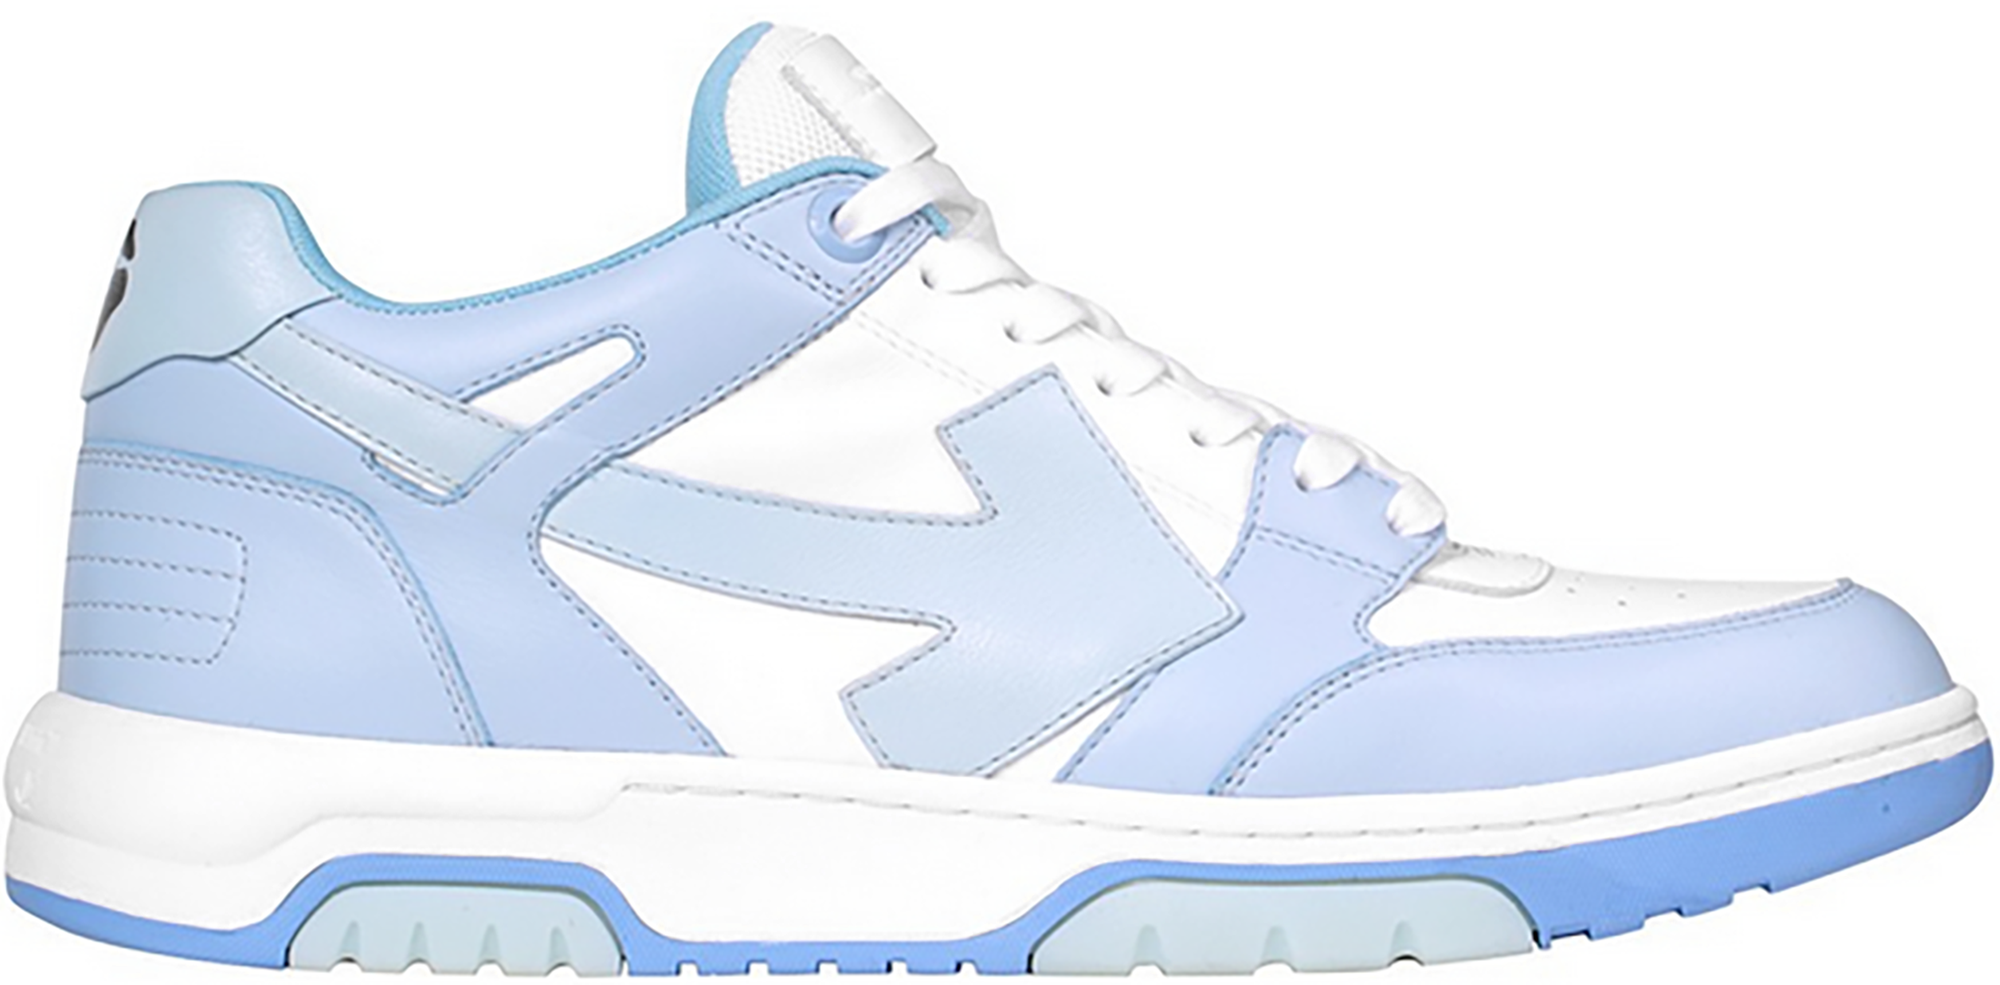 OFF-WHITE OOO Low Out Of Office White